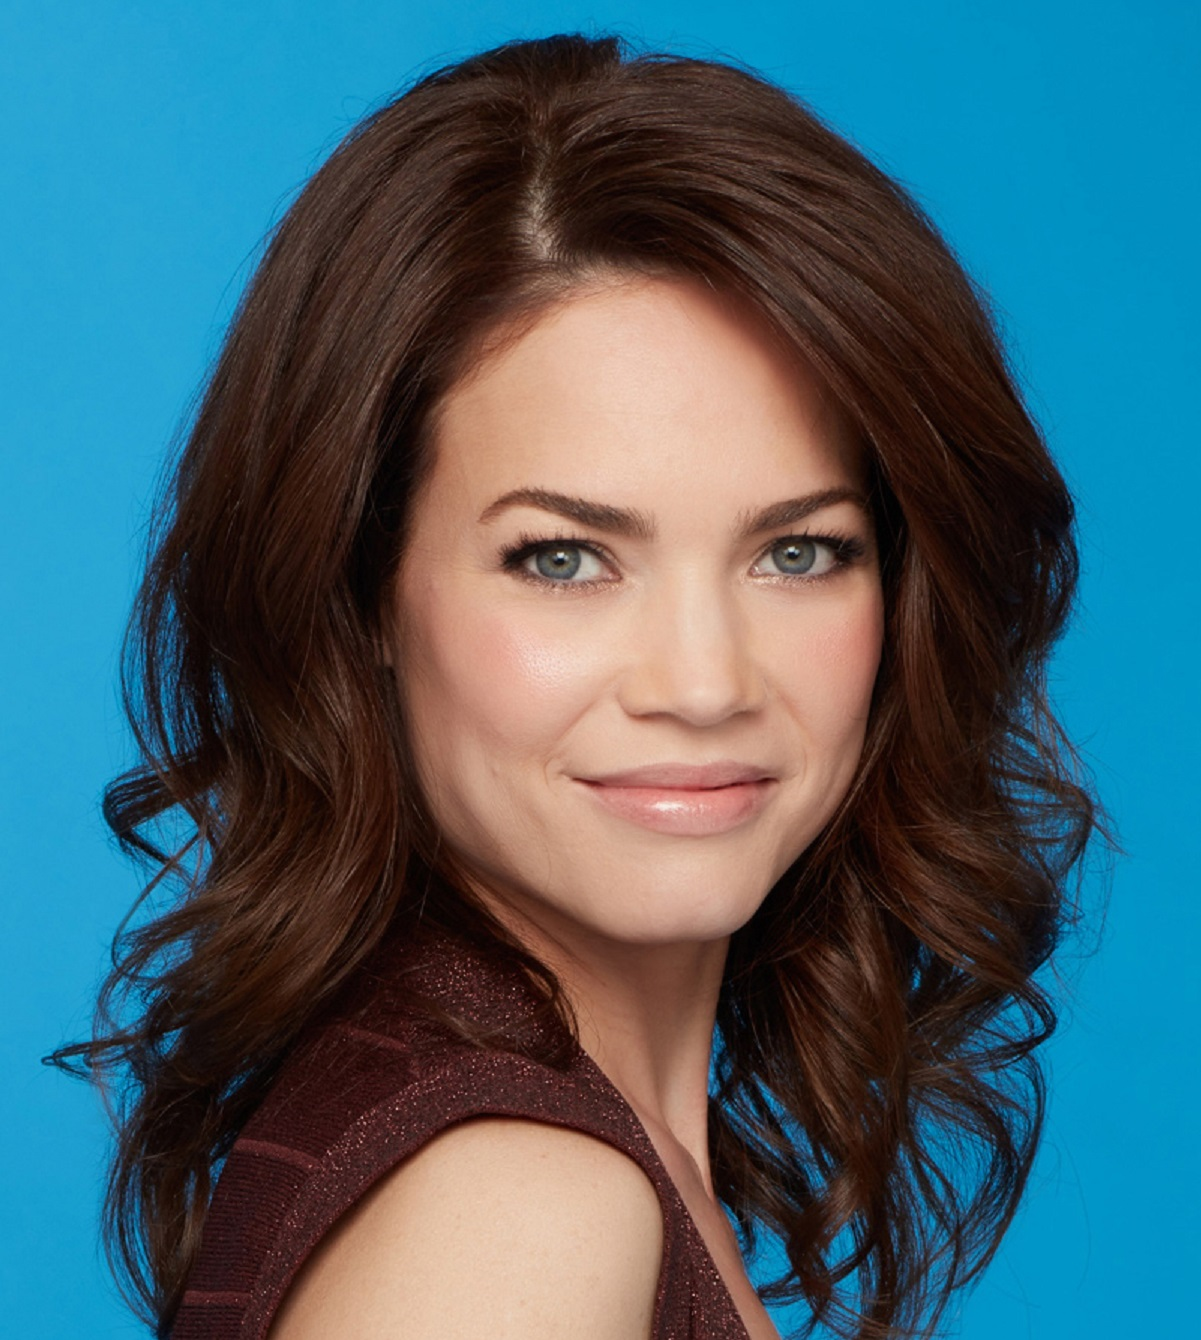 images Rebecca Herbst born May 12, 1977 (age 41)